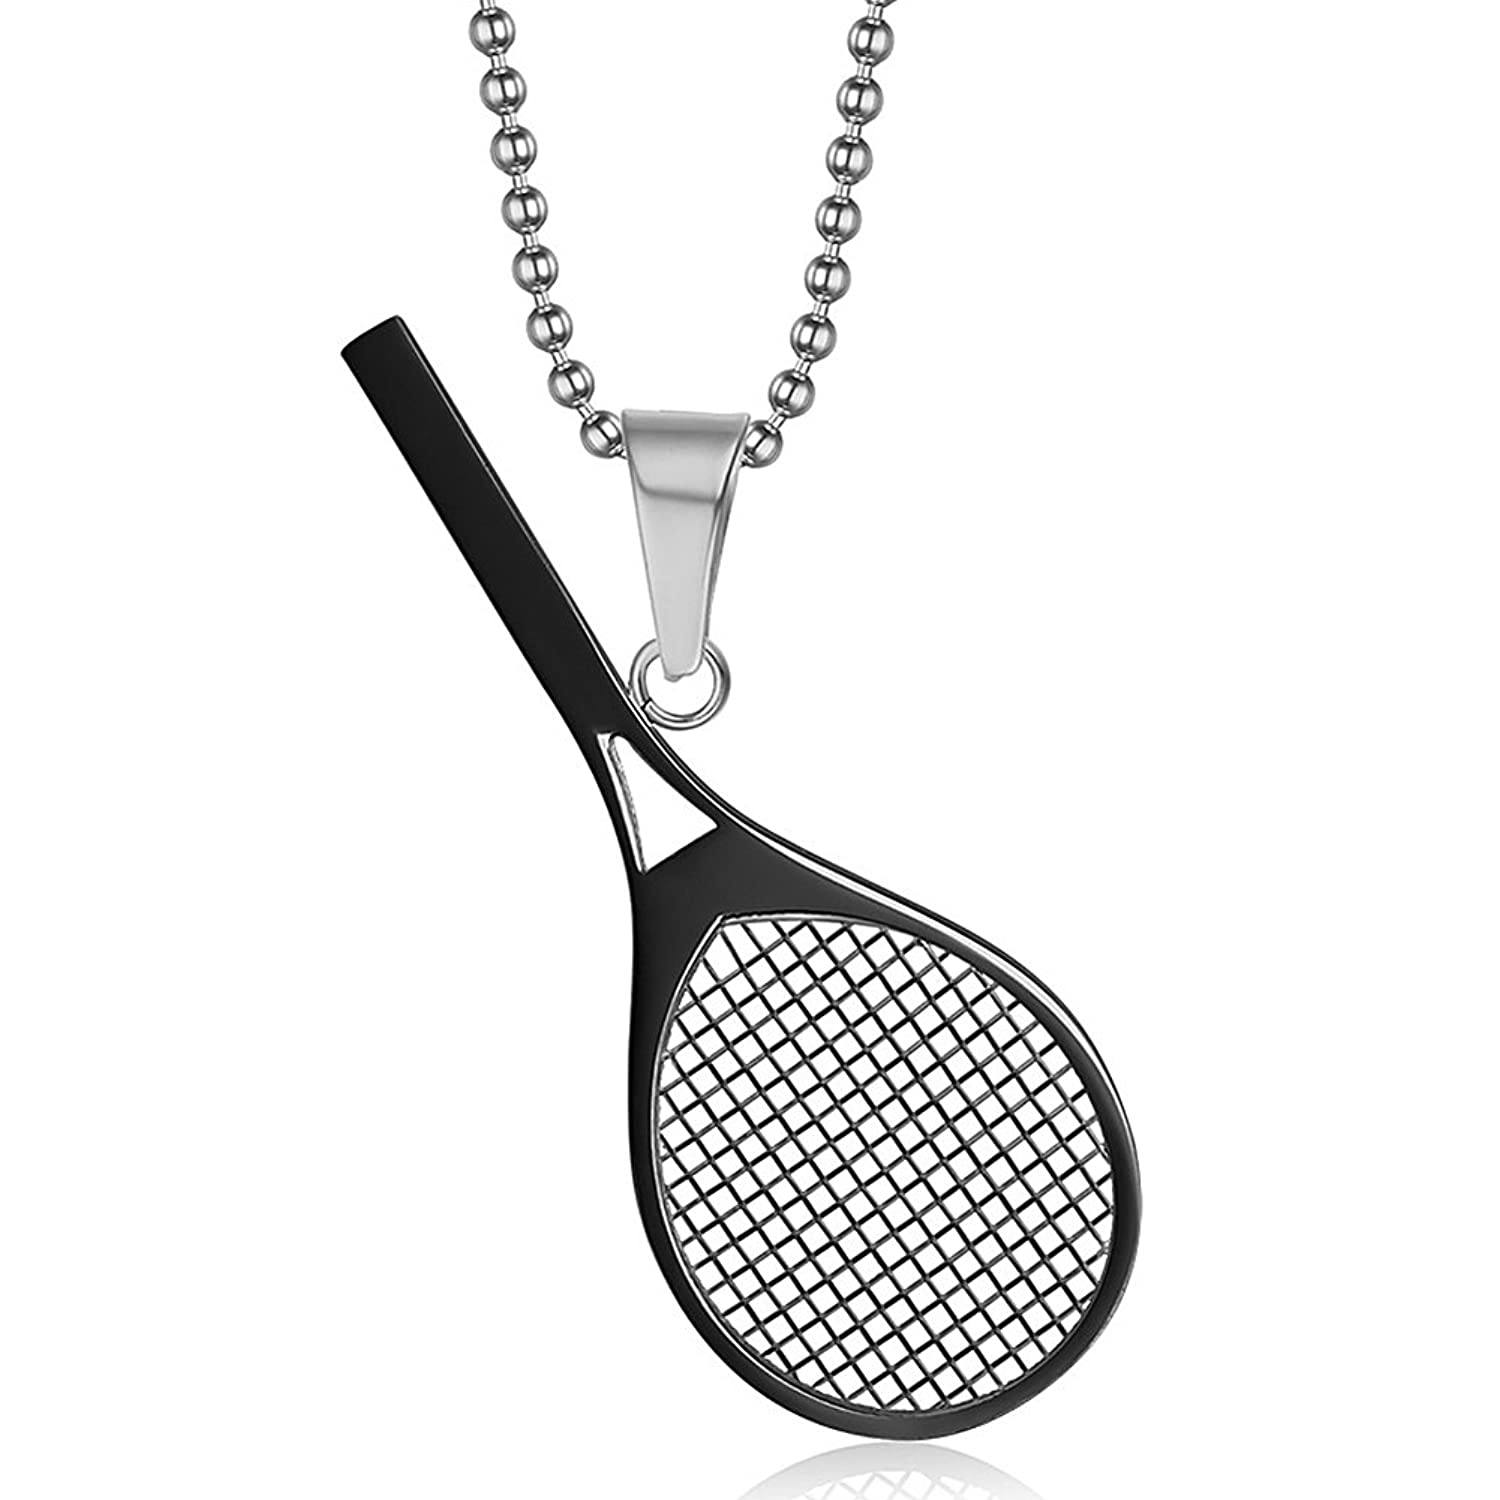 Meyiert jewelry stainless steel tennis racket shape pendant necklace meyiert jewelry stainless steel tennis racket shape pendant necklace perfect gift for him or her black amazon mozeypictures Image collections